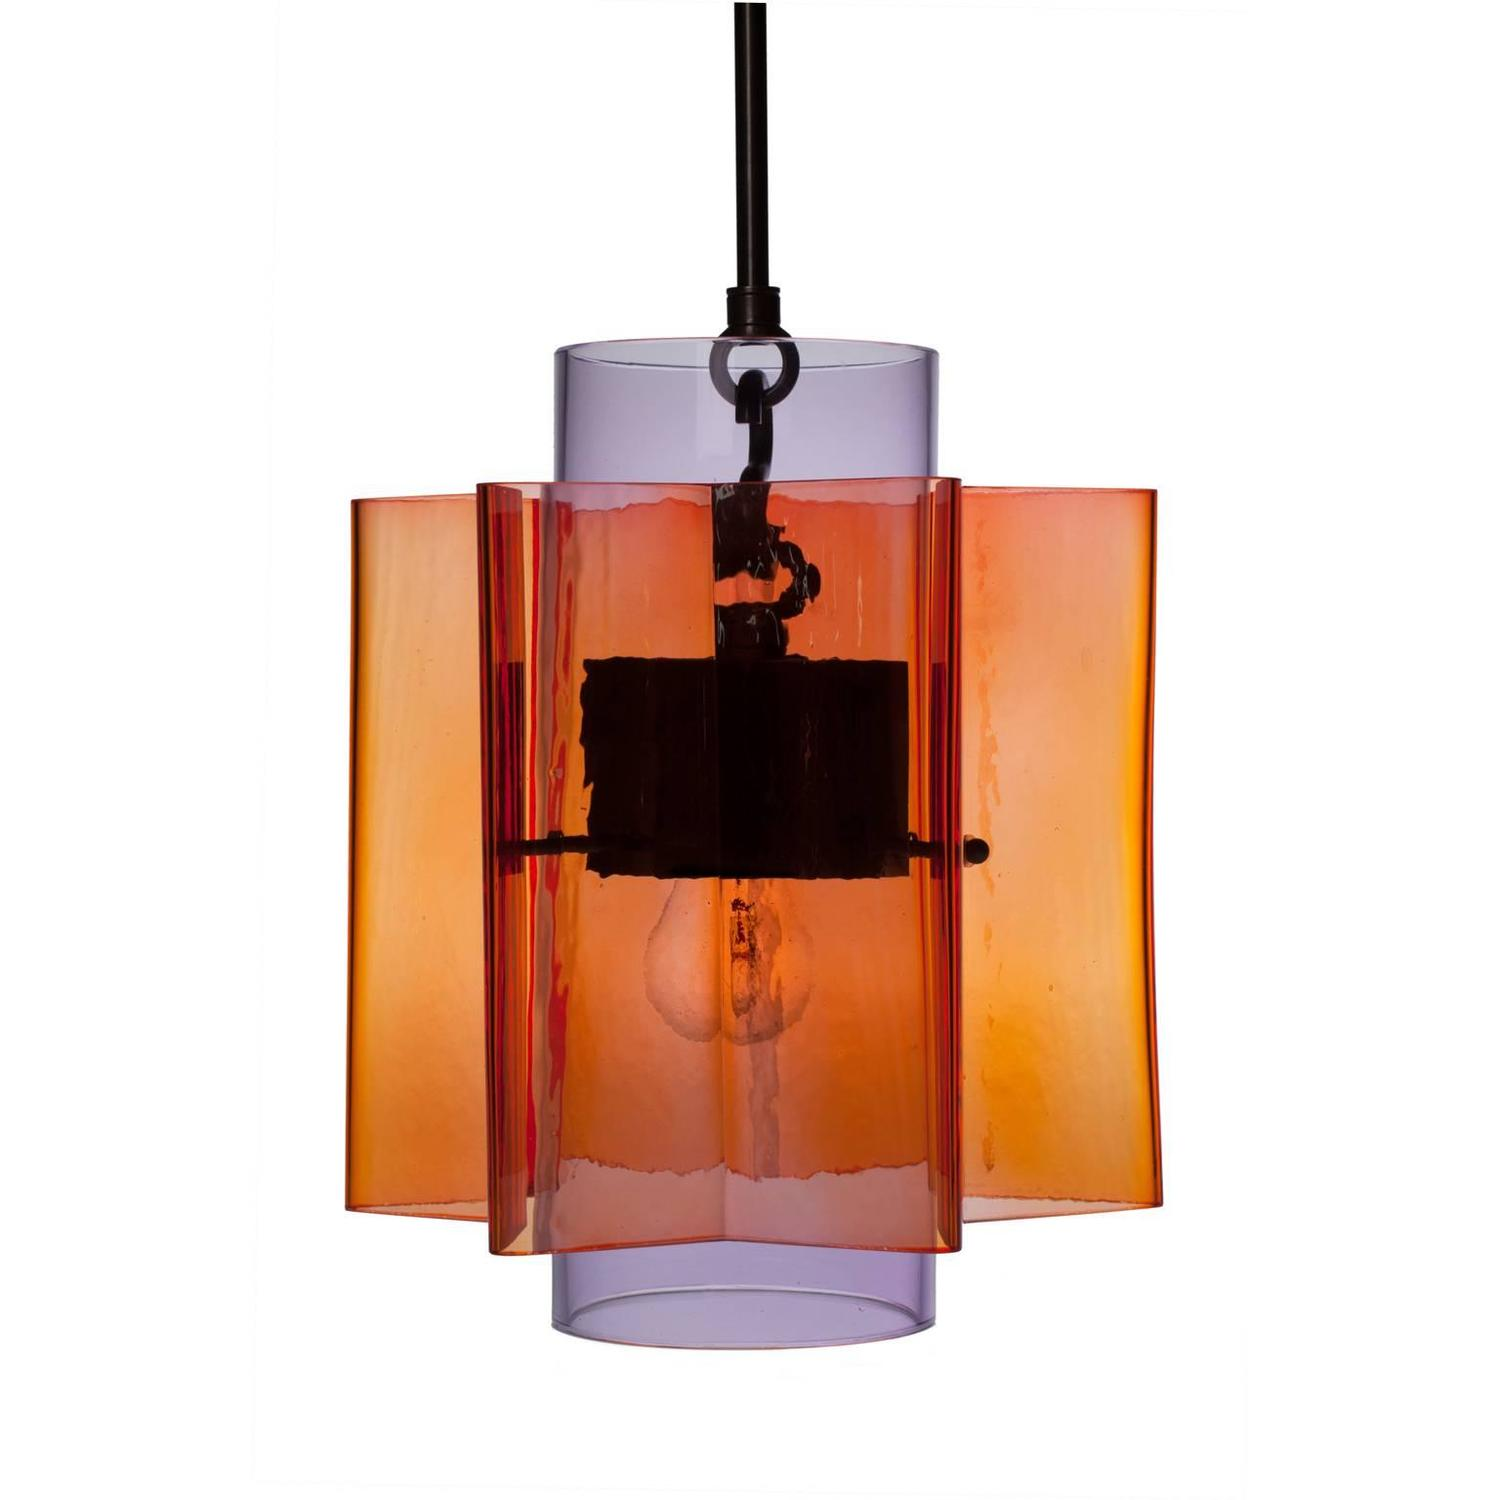 Petrona Star Shaped Pendant Light In Colored Mouthblown Glass For Sale